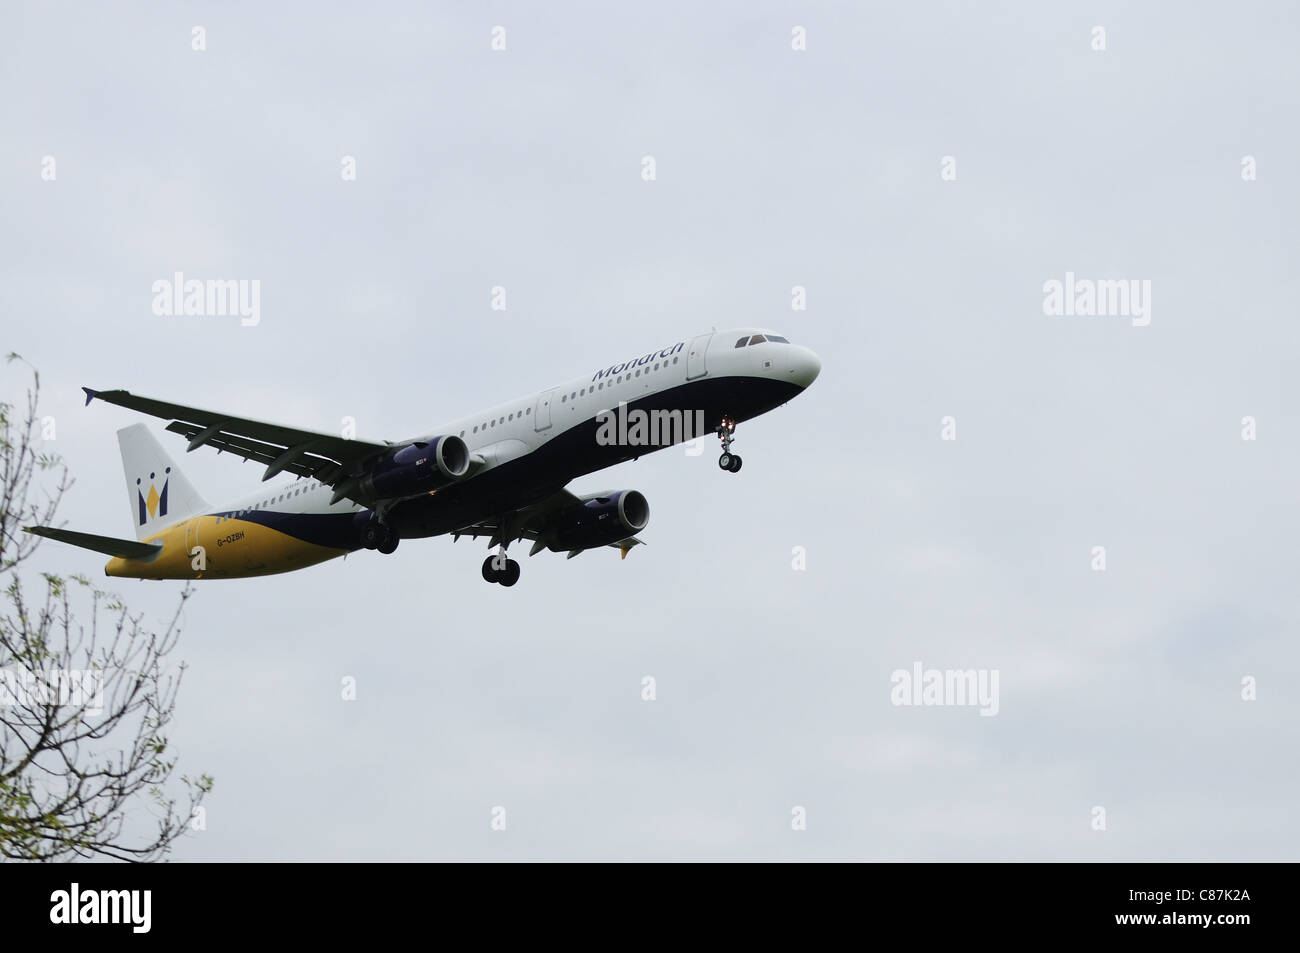 Twin jet aircraft in Monarch airline livery landing at Manchester Airport. - Stock Image